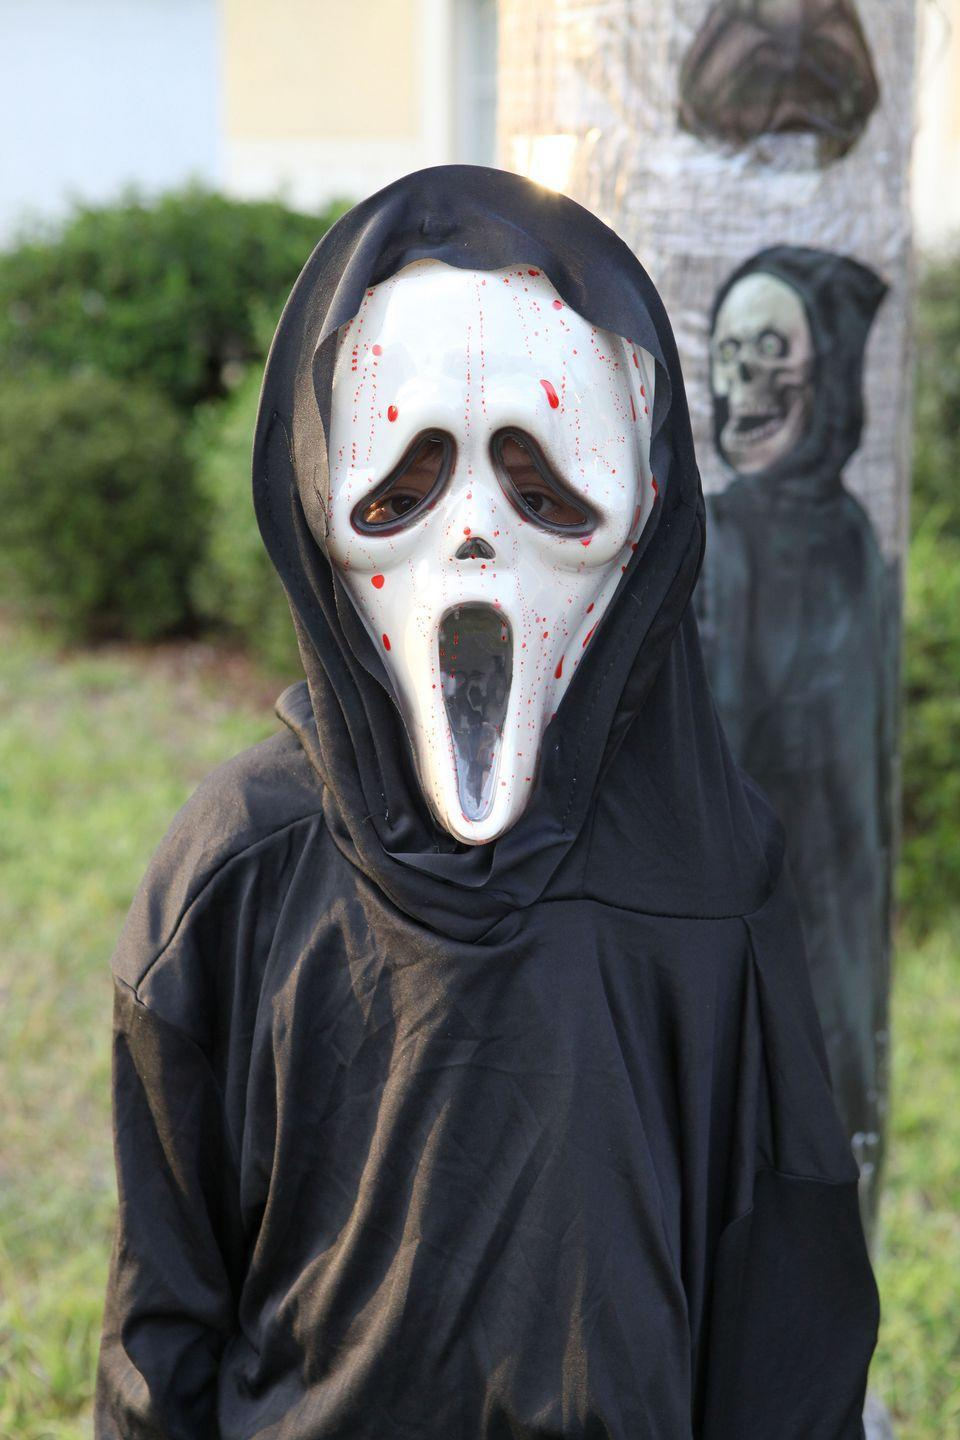 <p>The movie <em>Scream</em>, which premiered on December 20, 1996, would go on to inspire one of the most popular costumes of the decade.</p>